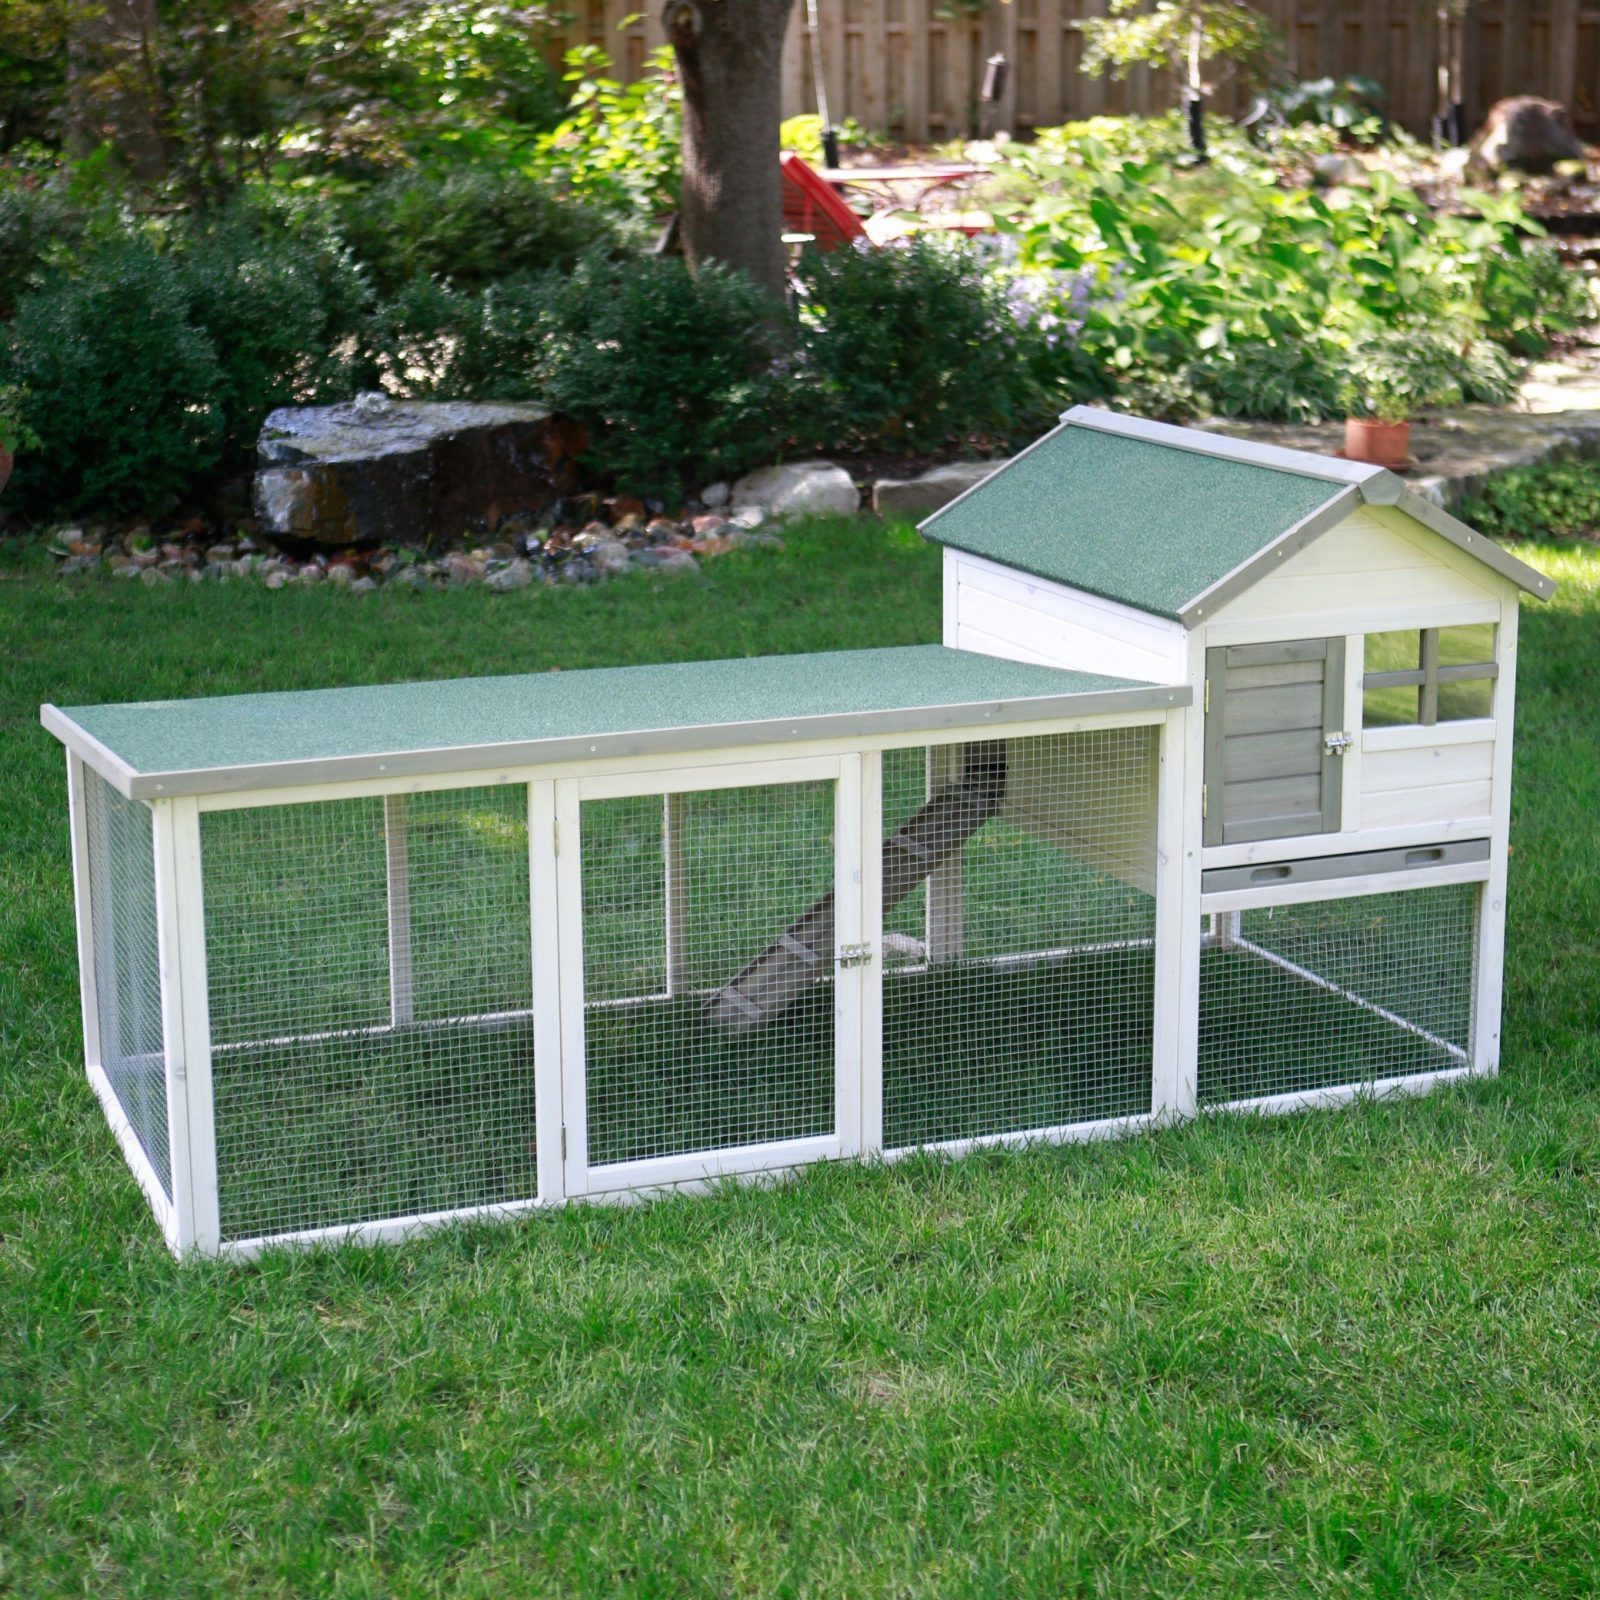 Boomer & George White Wash Outdoor Rabbit Hutch With Extended Run von Boomer And George Rabbit Hutch Photo